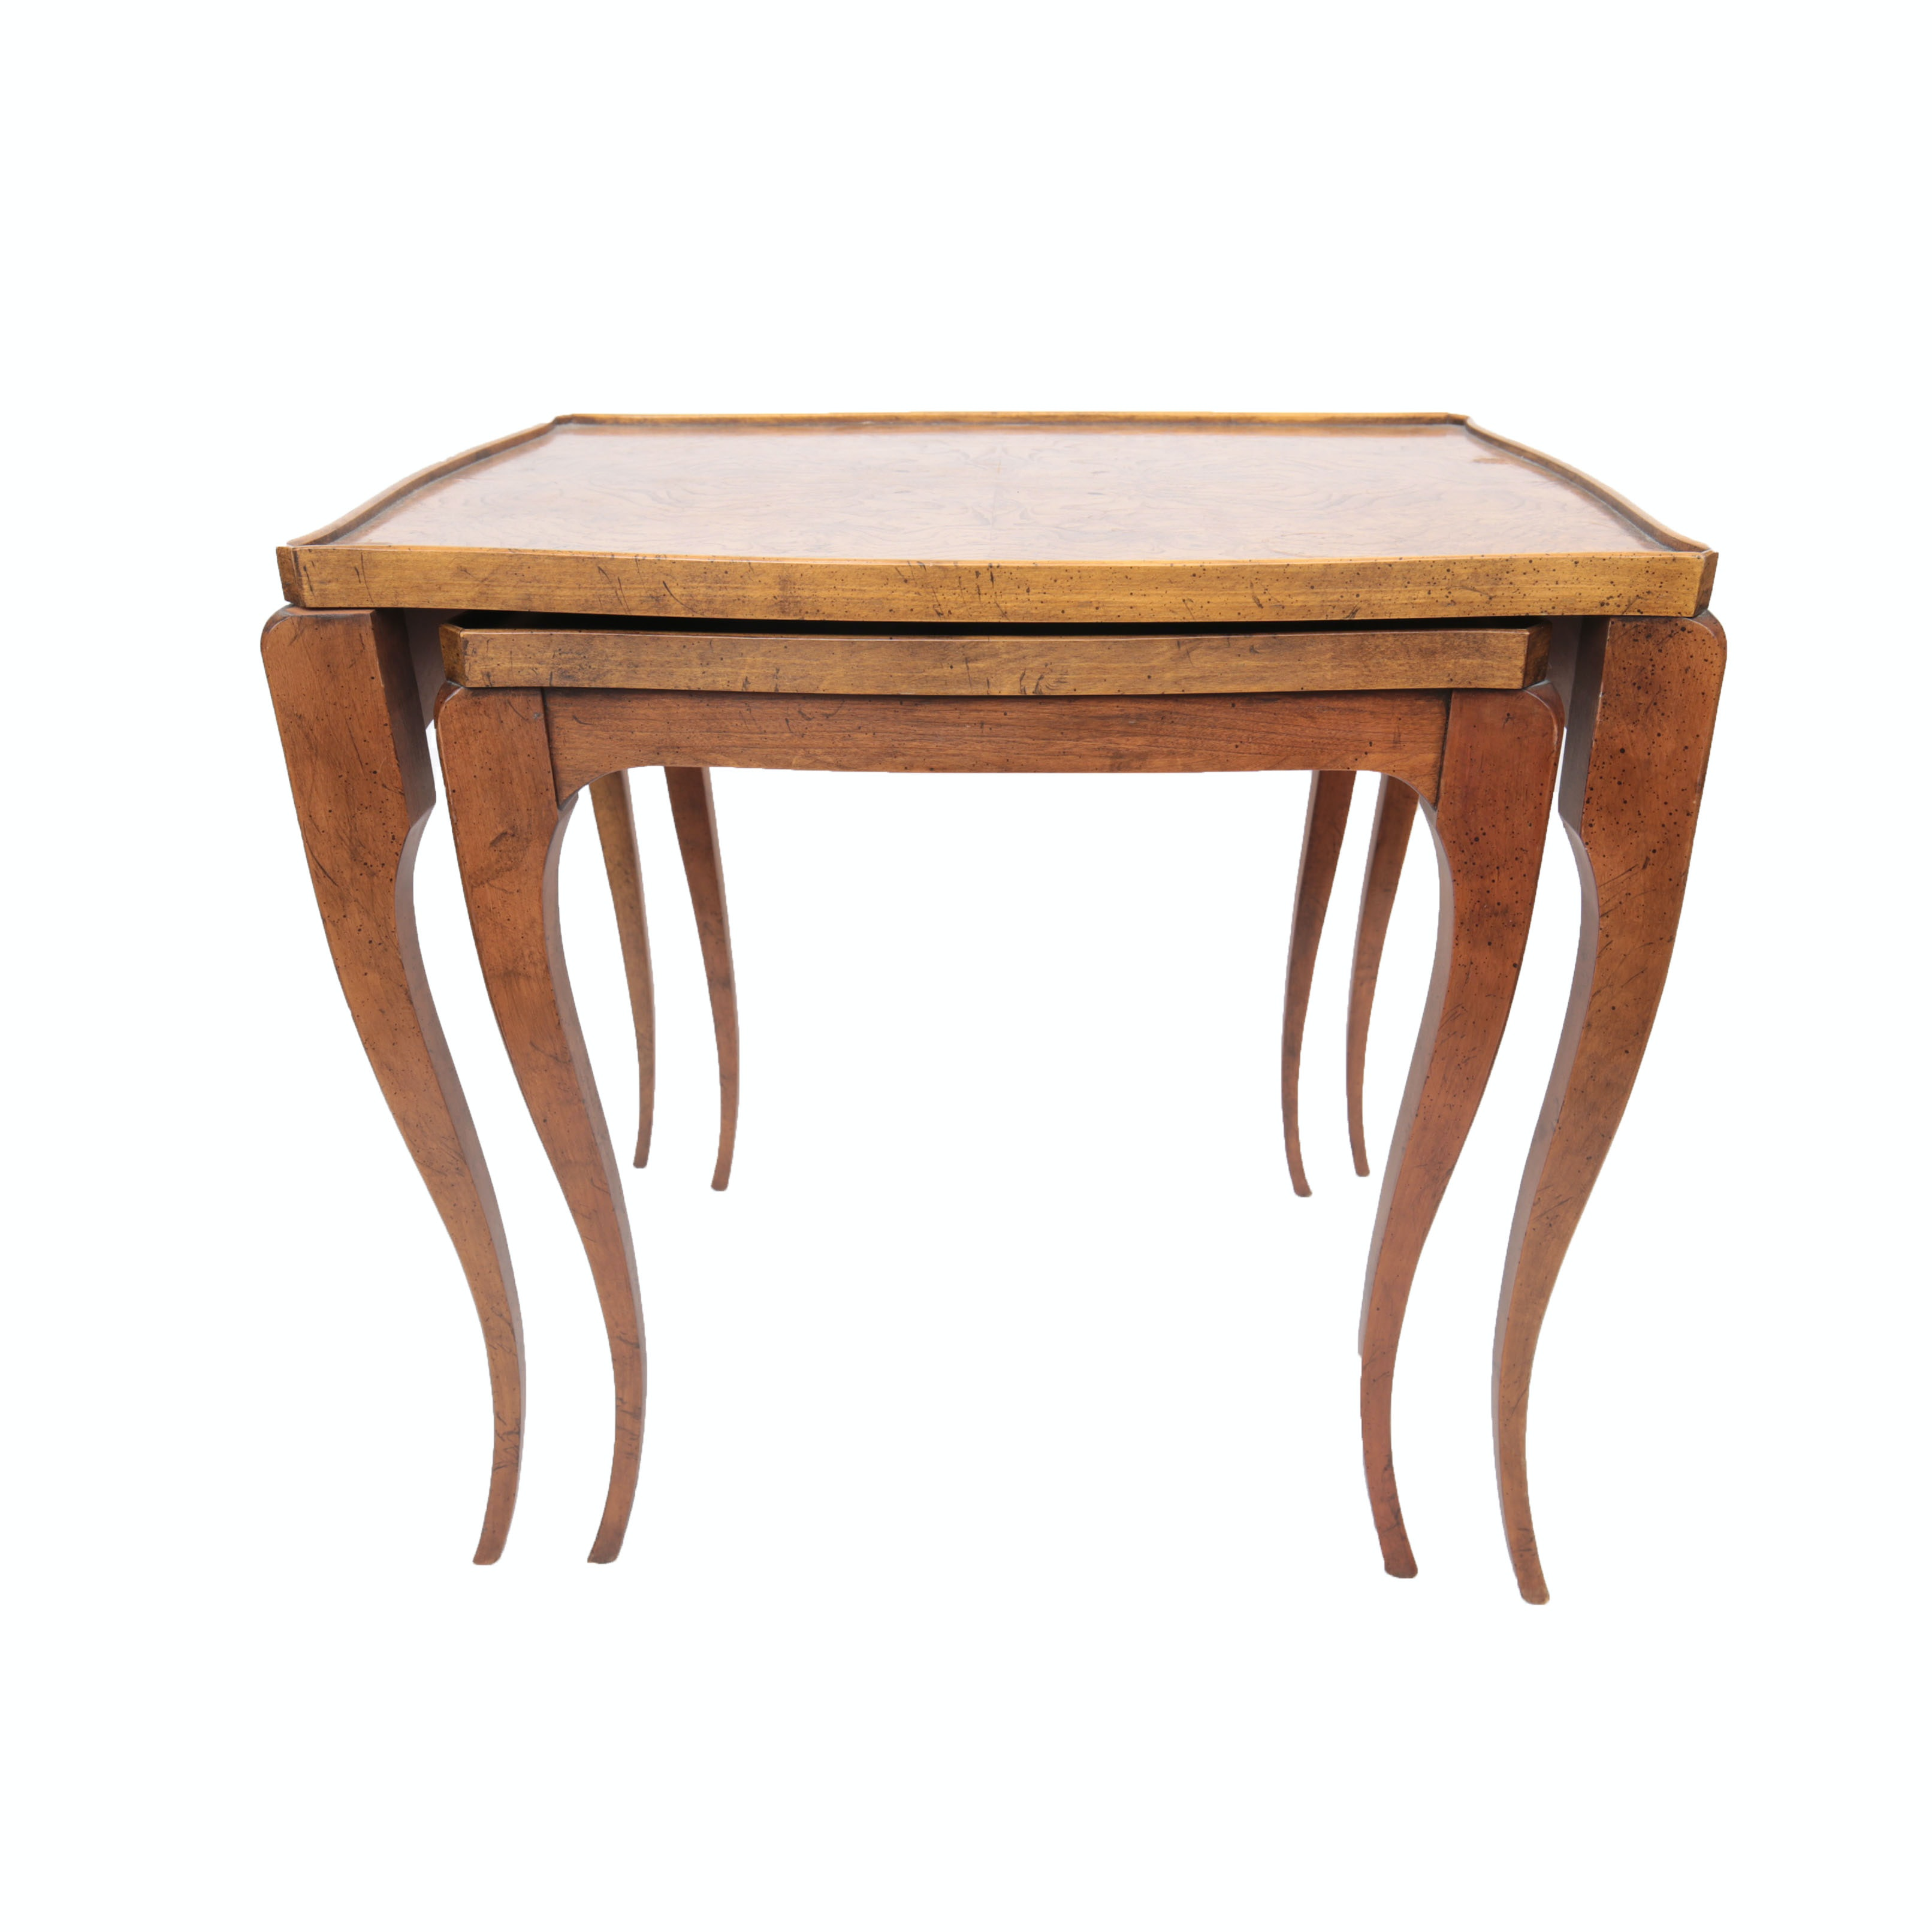 Louis XV Style Nesting Tables by Baker Furniture